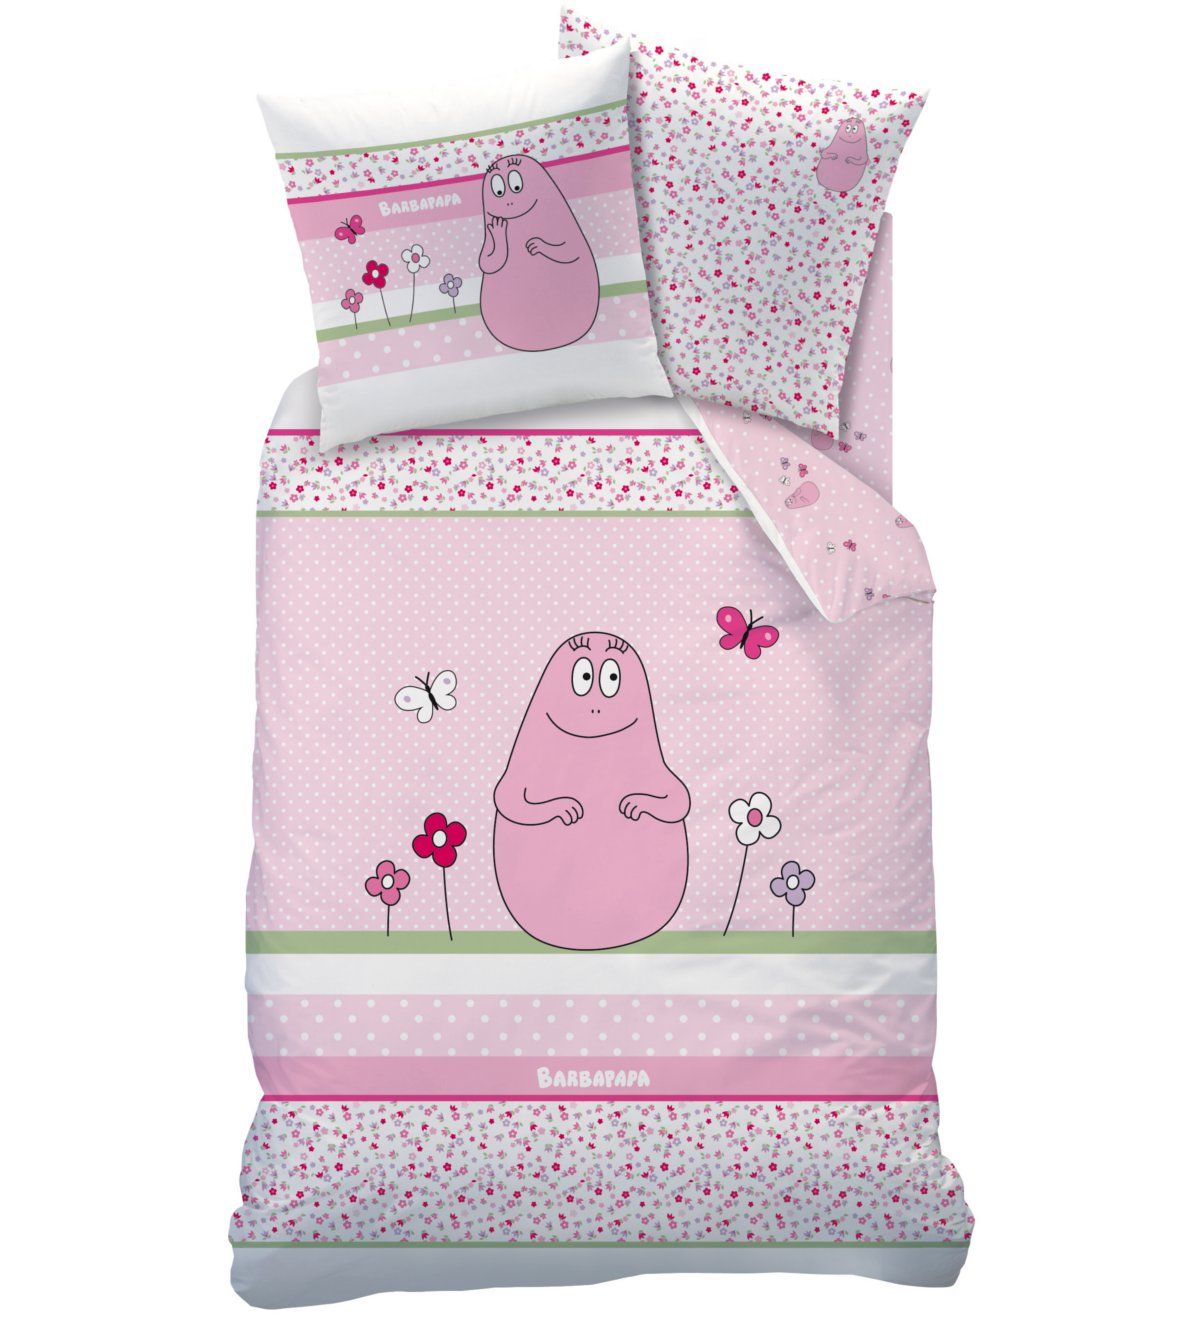 housse de couette barbapapa 140 x 200 cm esprit. Black Bedroom Furniture Sets. Home Design Ideas